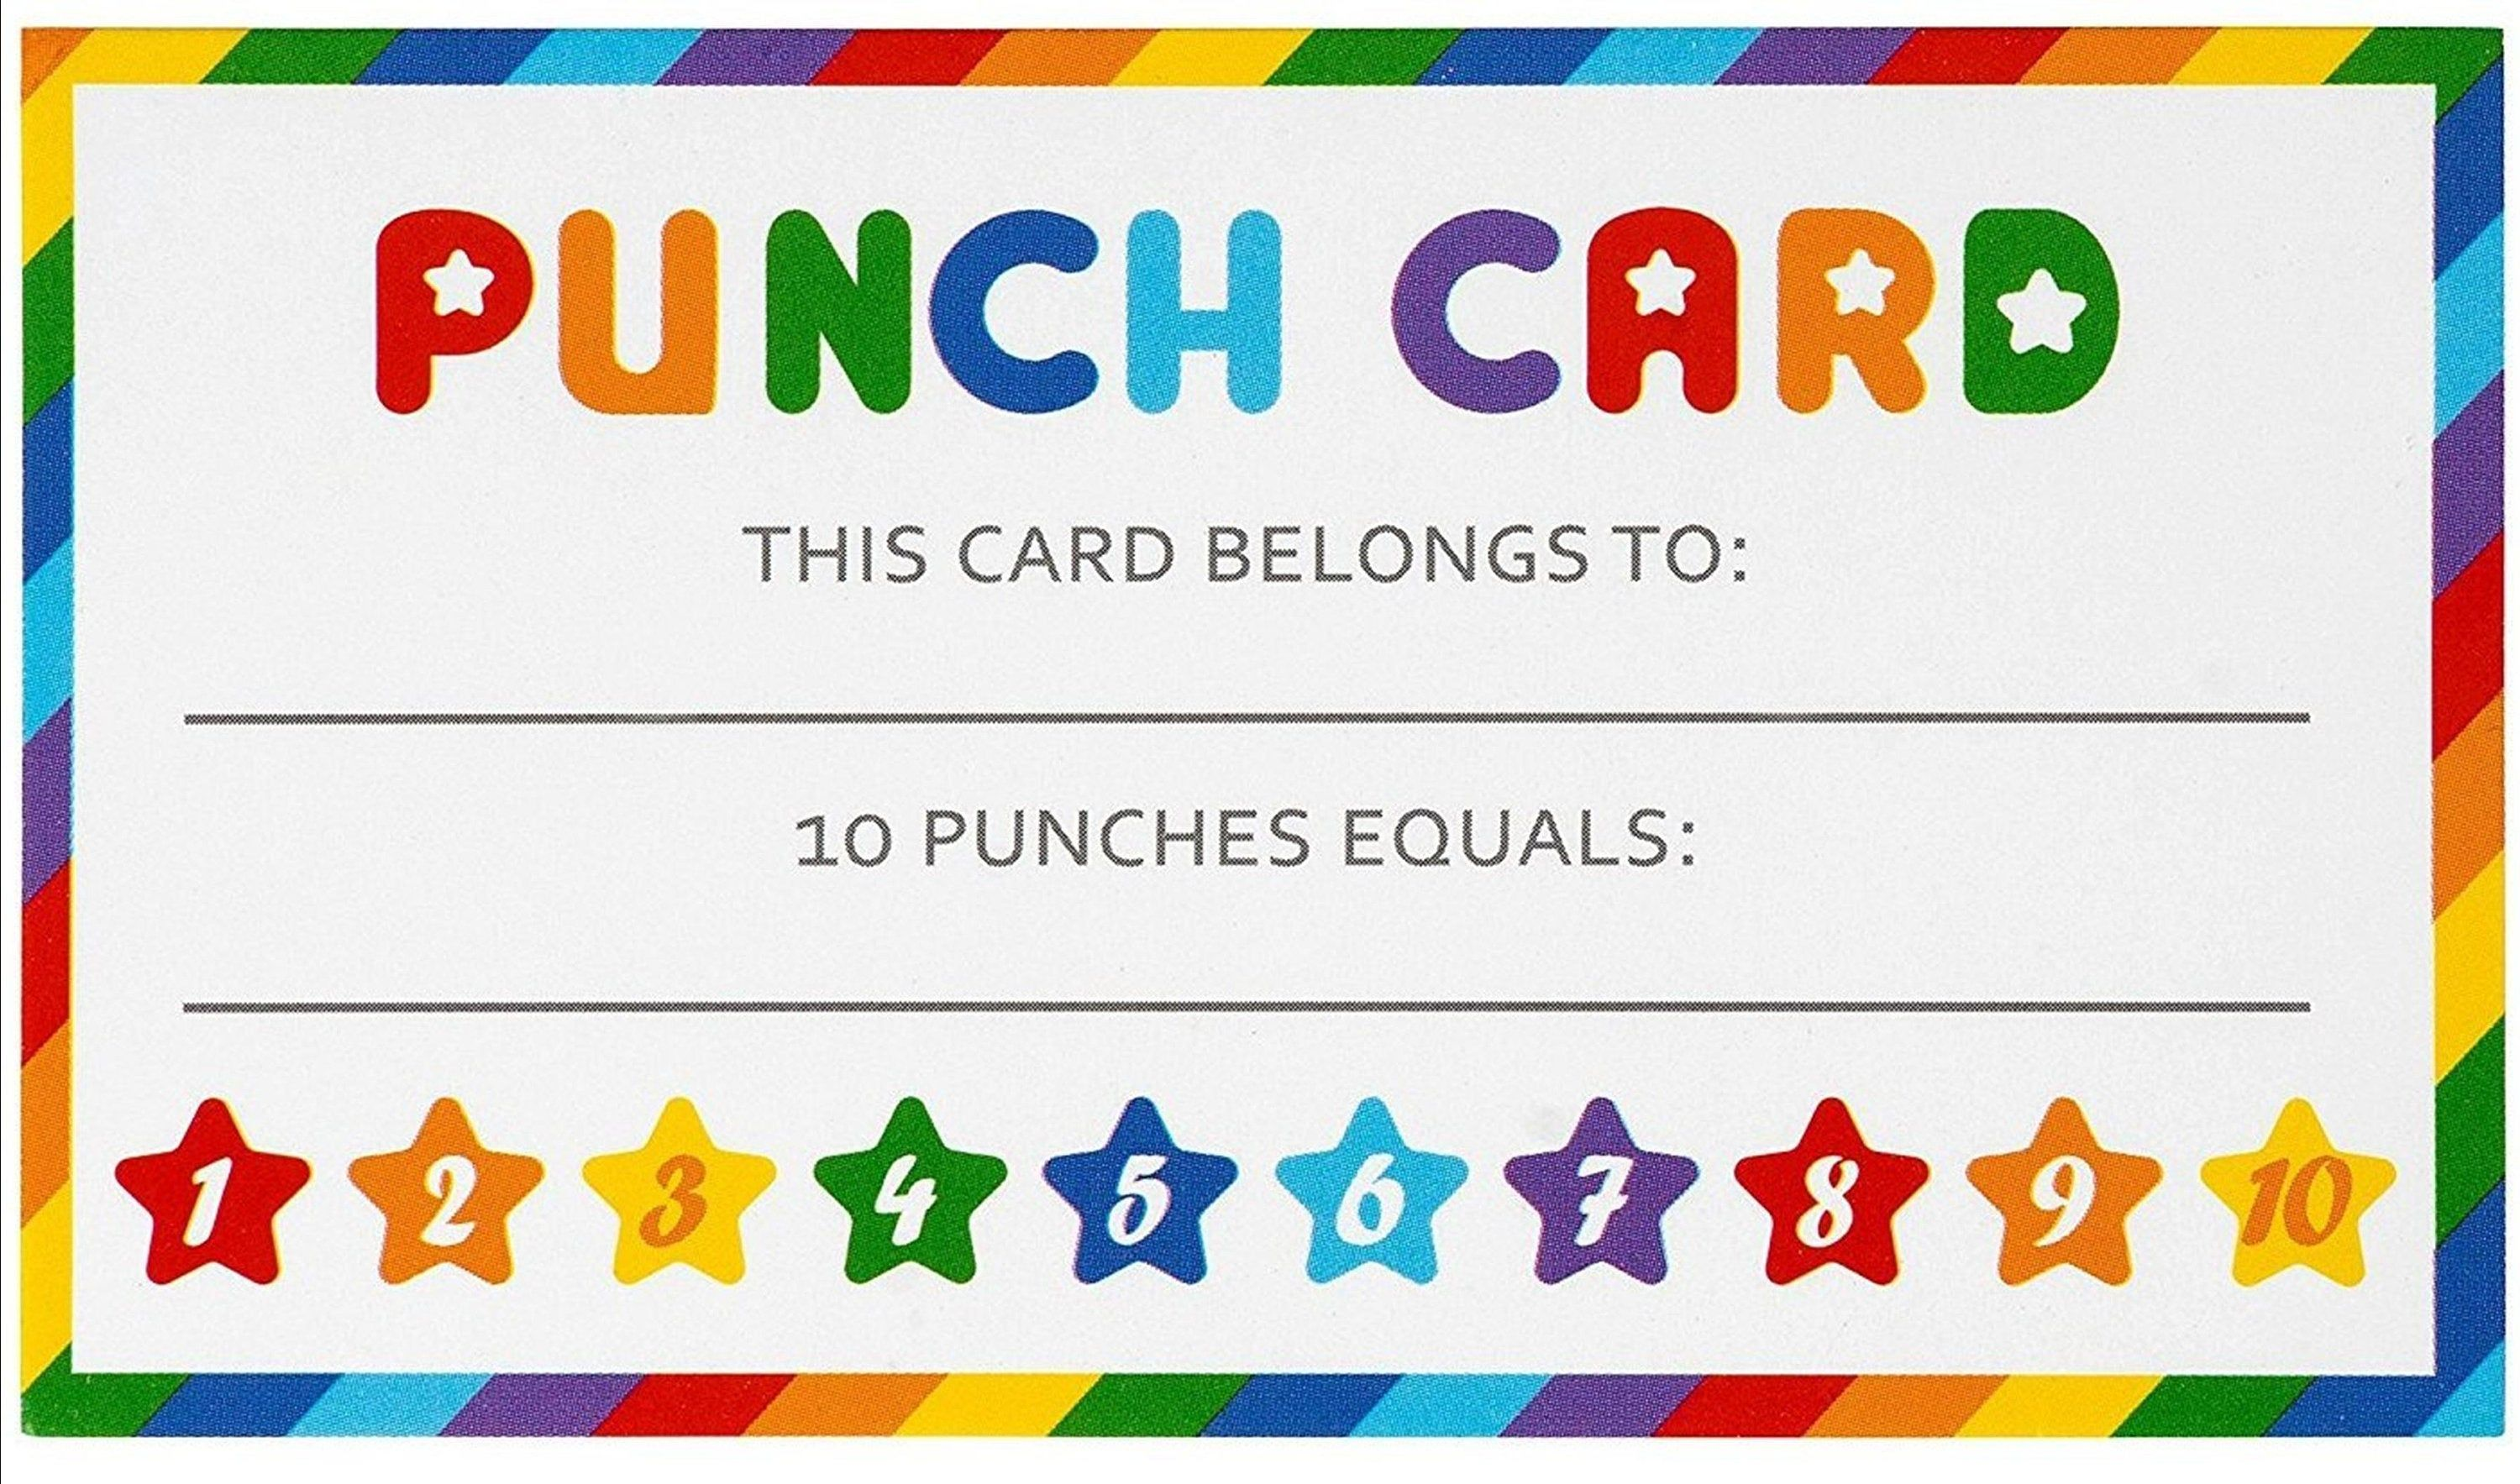 Punch Card Download Pdf 21 Punch Cards Pdf File To Do Punch Etsy Printable Chore Cards Punch Cards Chore Cards